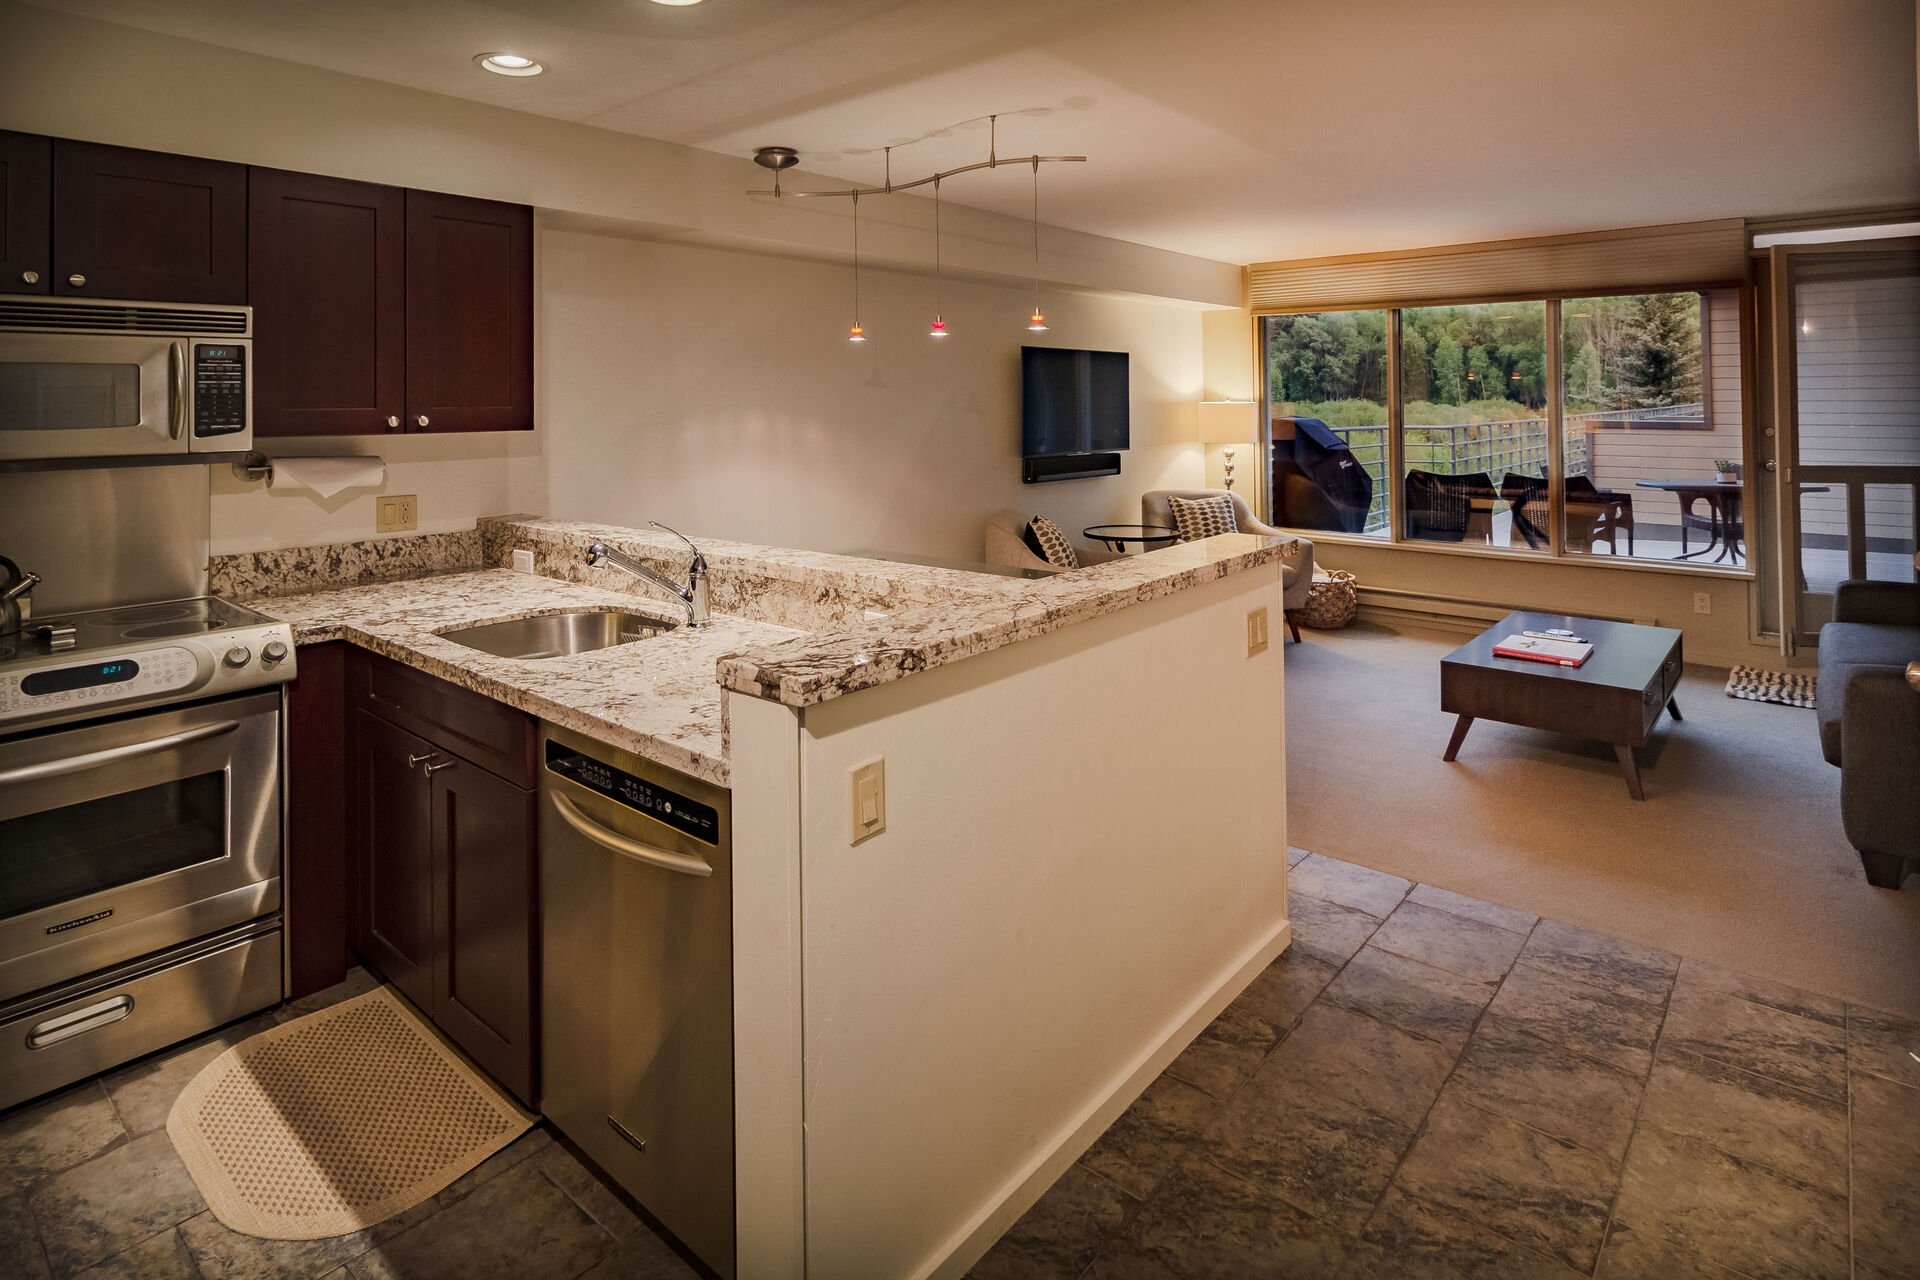 Marble counter in kitchen with sink.